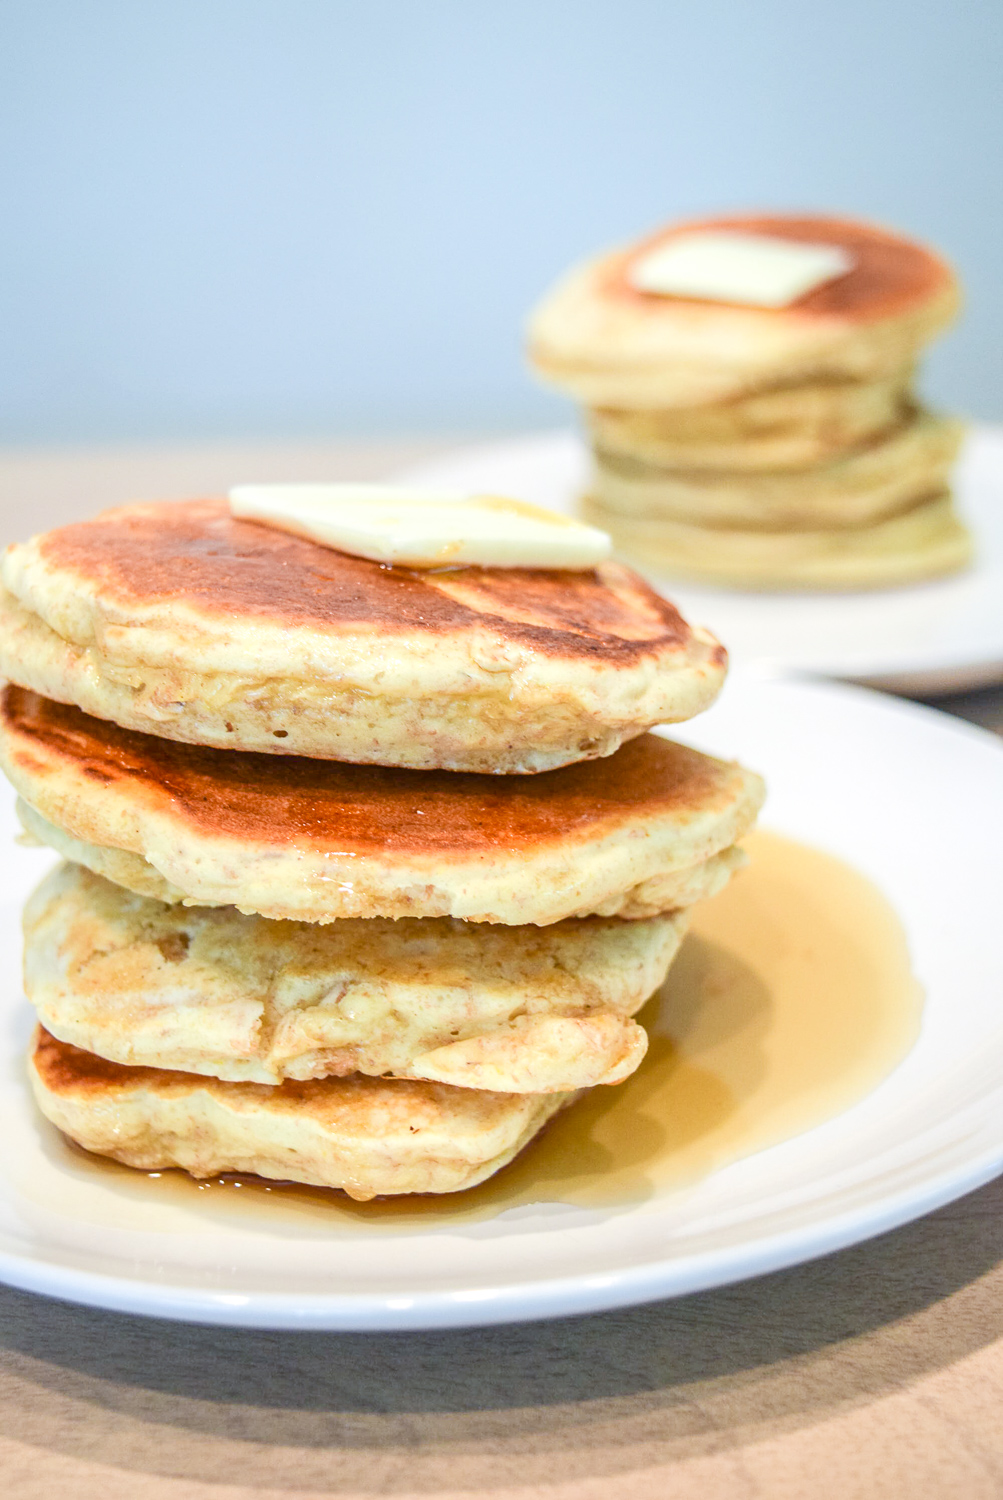 Trader Joe's Multigrain Pancake Mix stacks with butter and maple syrup from left side